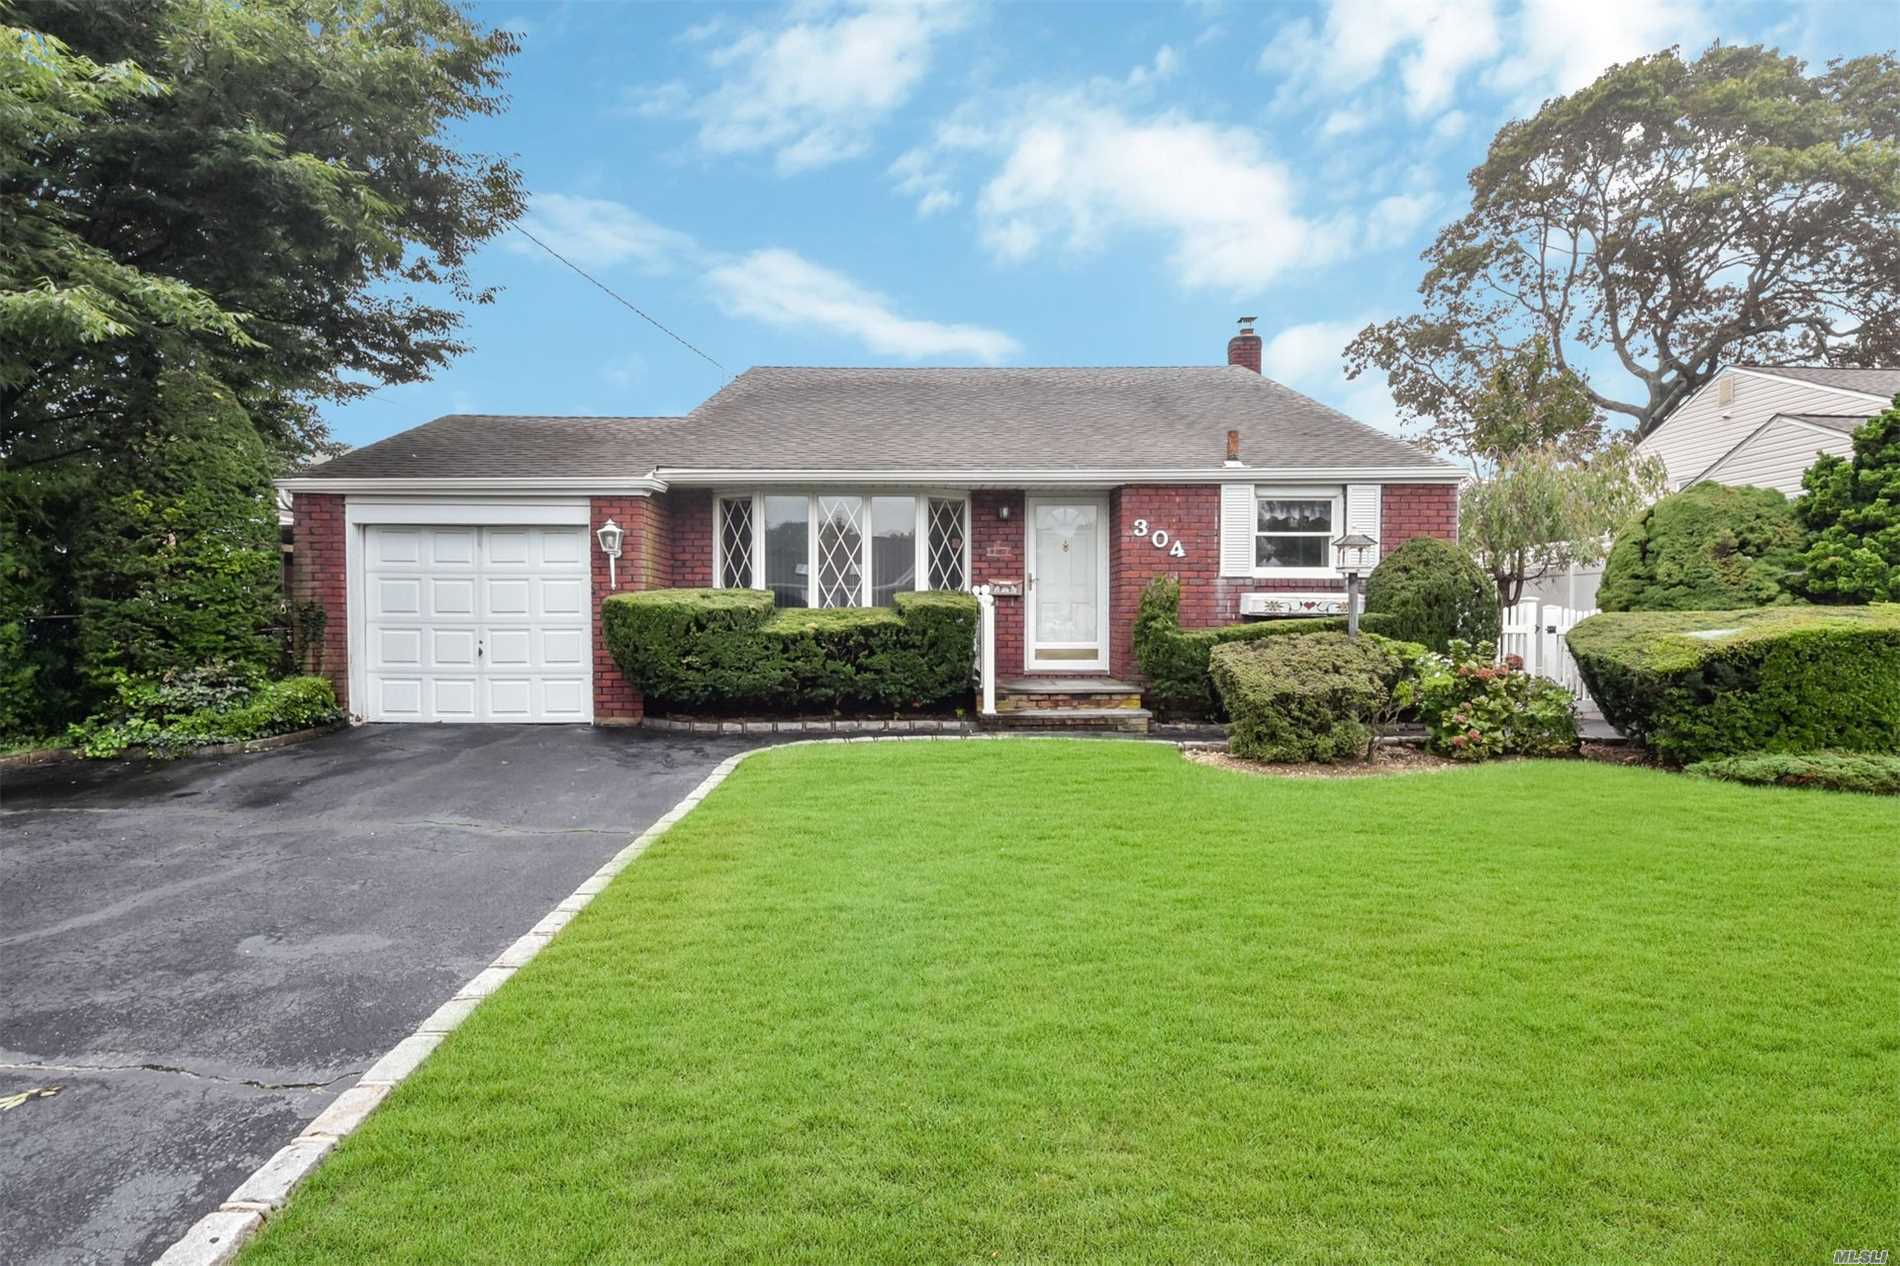 Lovely Brick Split Level Home Located In The Heart Of Massapequa Park. This Home Features Hardwood Floors, 3 Year Cac, 2 Year Heating System, 100 Amp Svc, Eik, Living Rm, Dining Rm, Large Den, 2 Full Baths, Laundry & Utlities, 2 Car Garage, Fully Fenced Private Yard. Close To Schools, Shopping, Restaurants & Transportation.